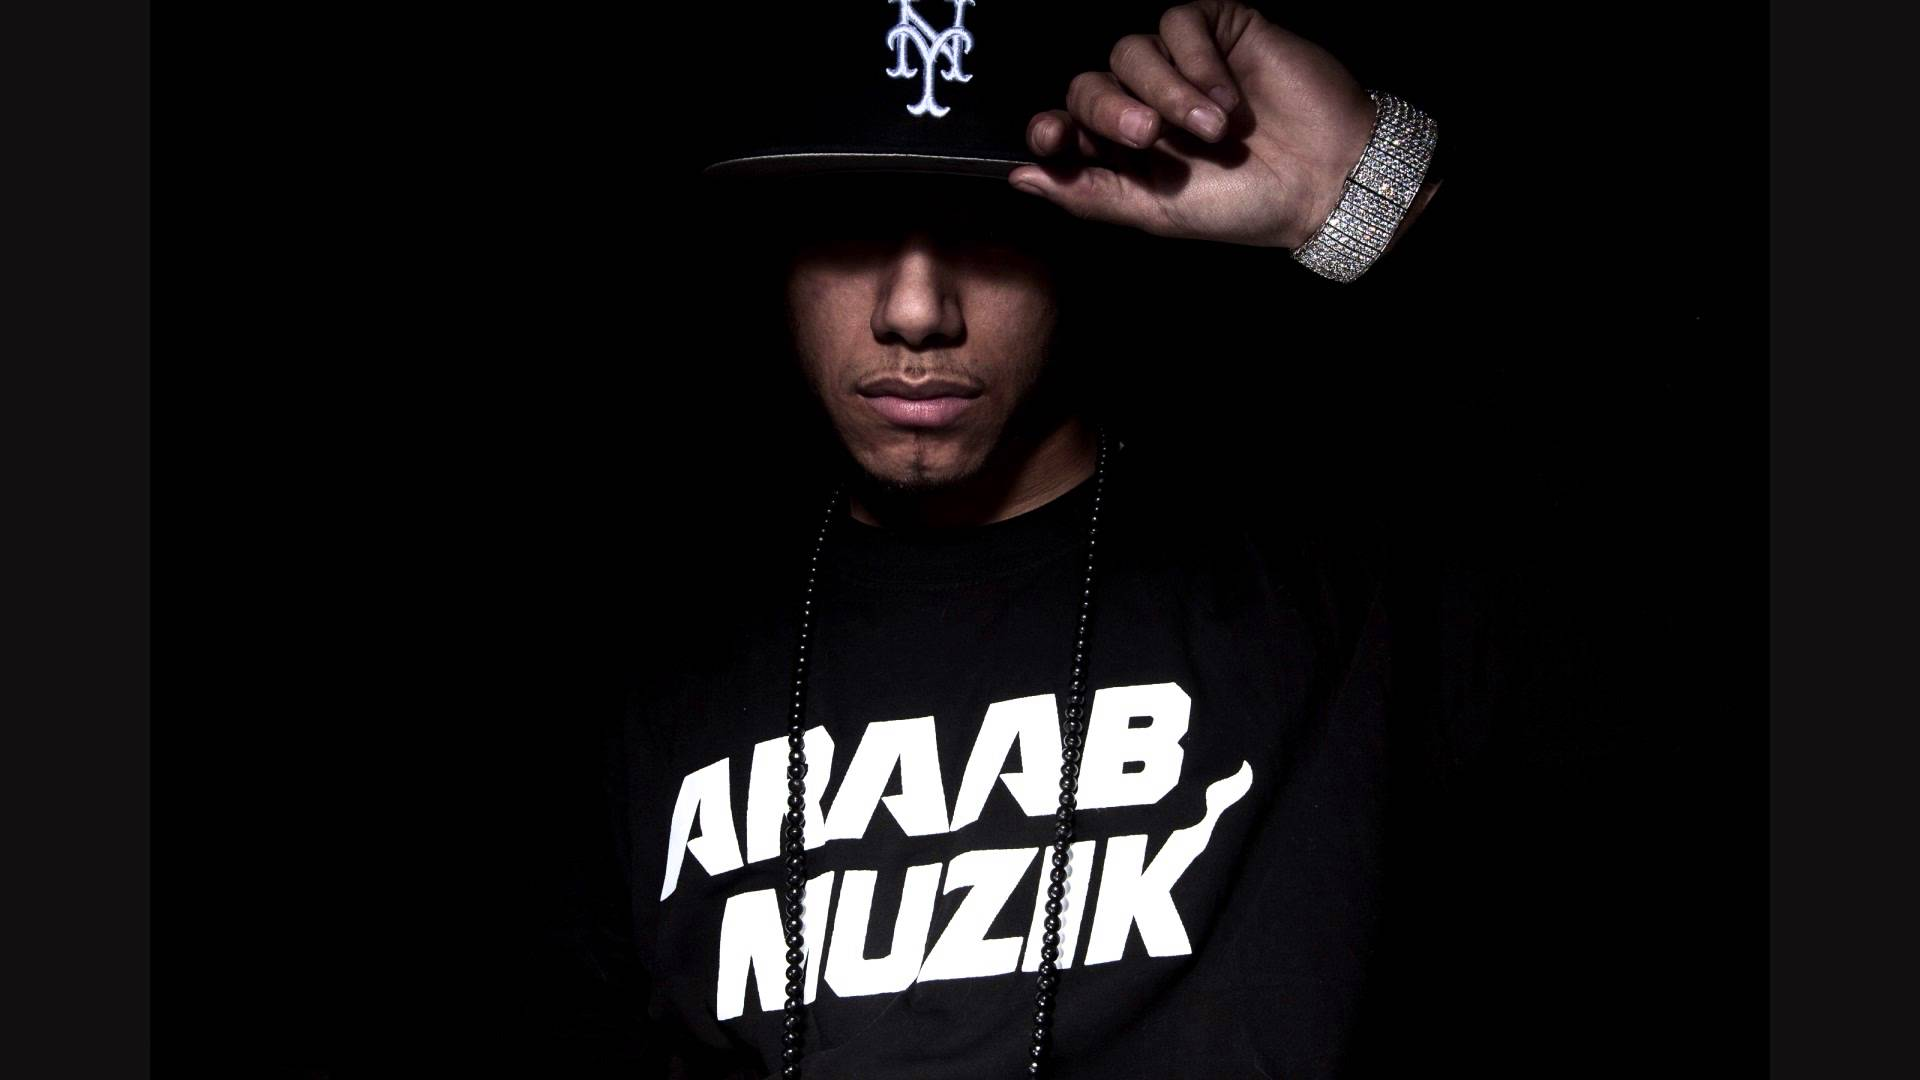 AraabMuzik Shot in New York, Currently Recovering in Hospital